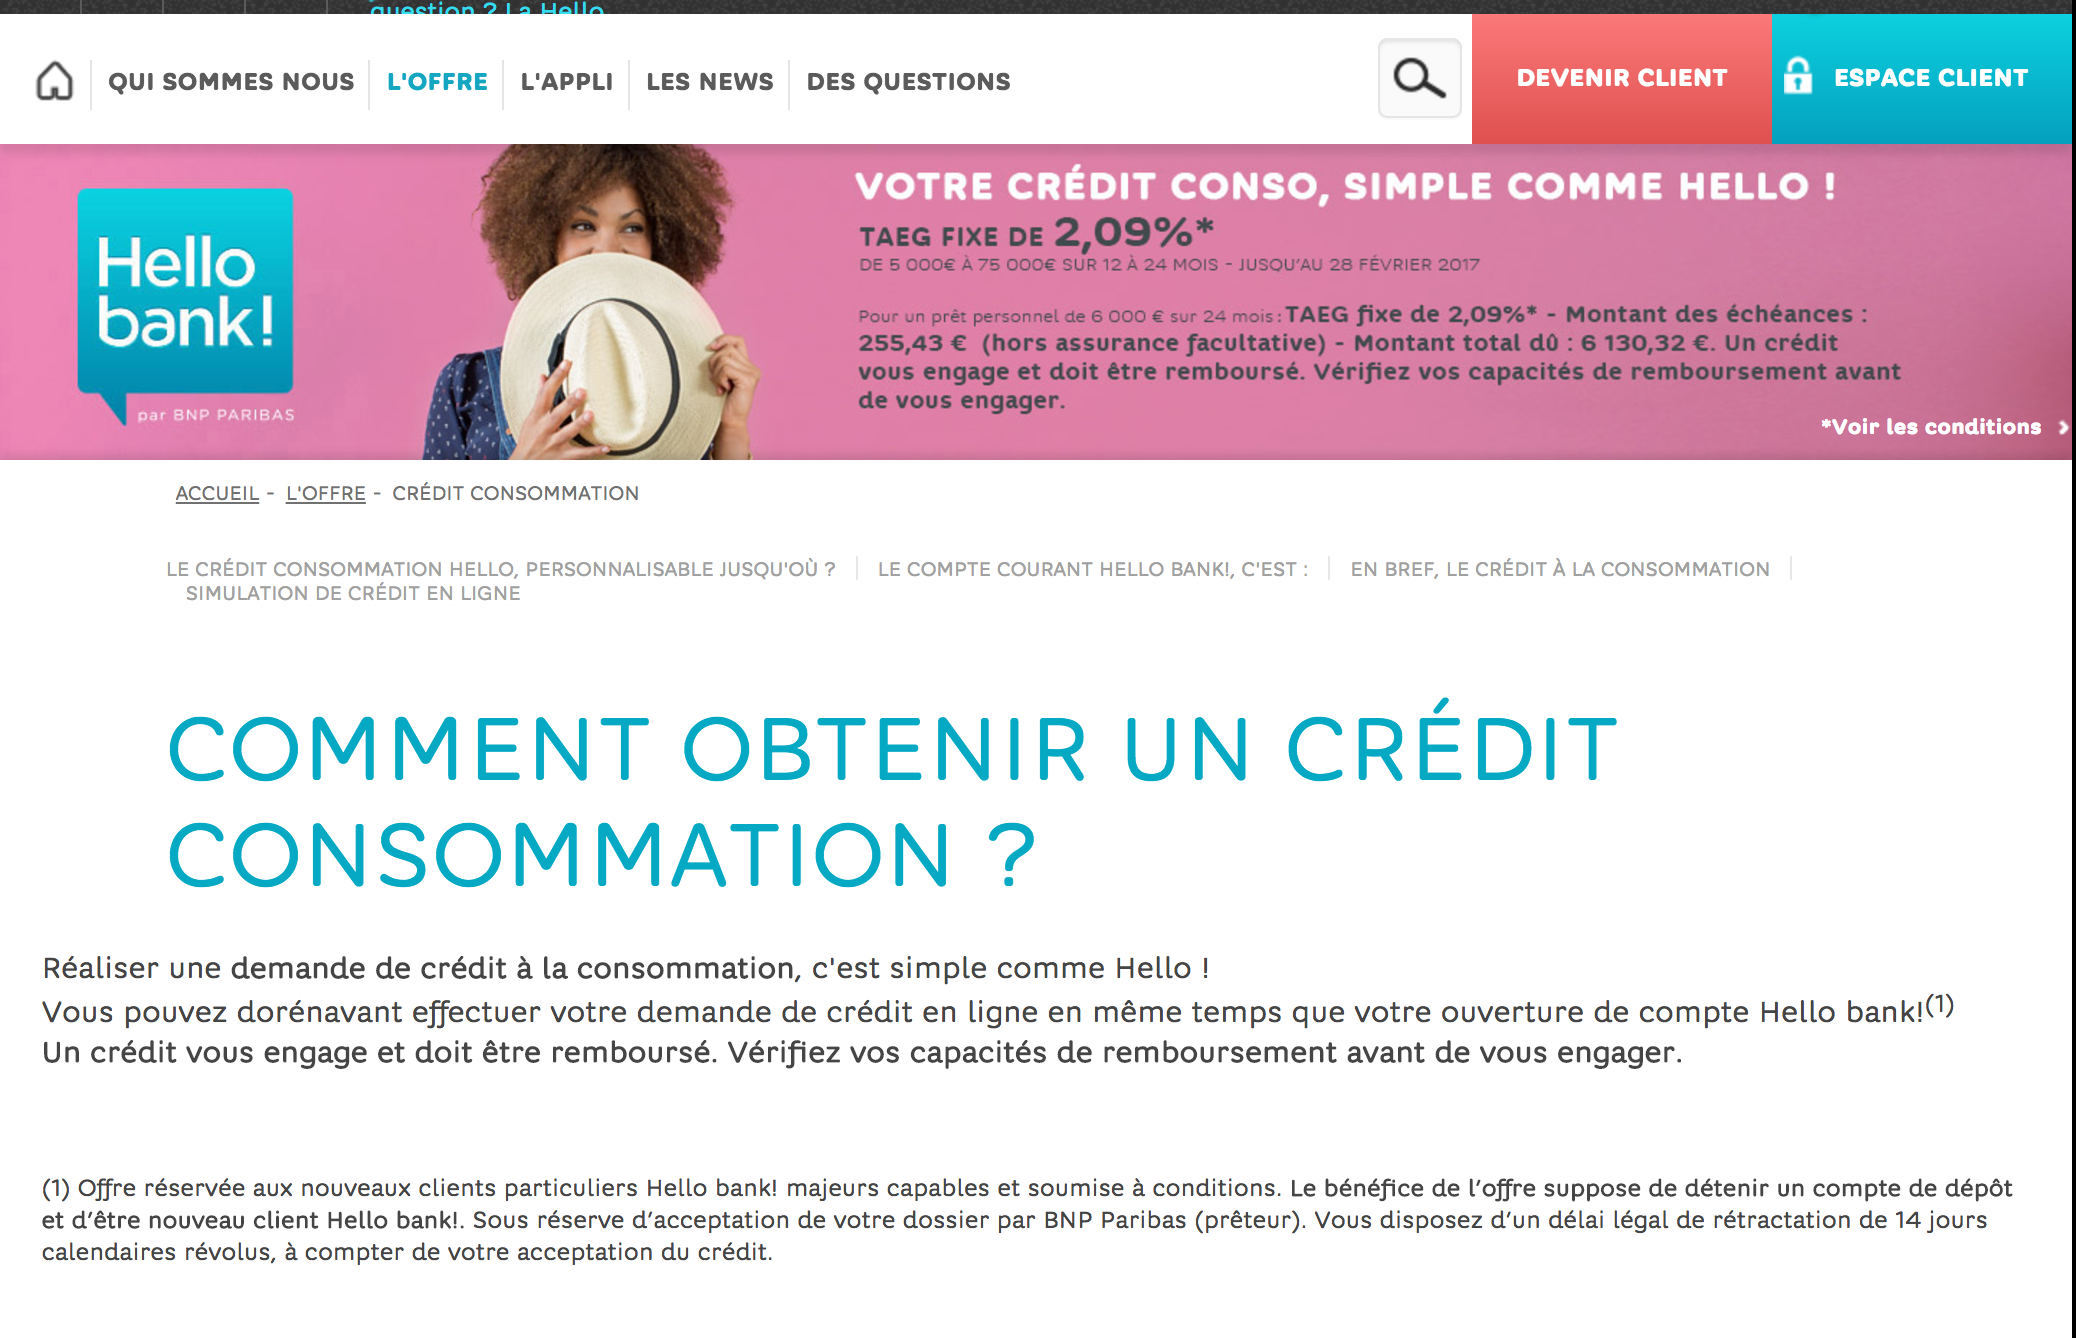 credit consommation Hello Bank